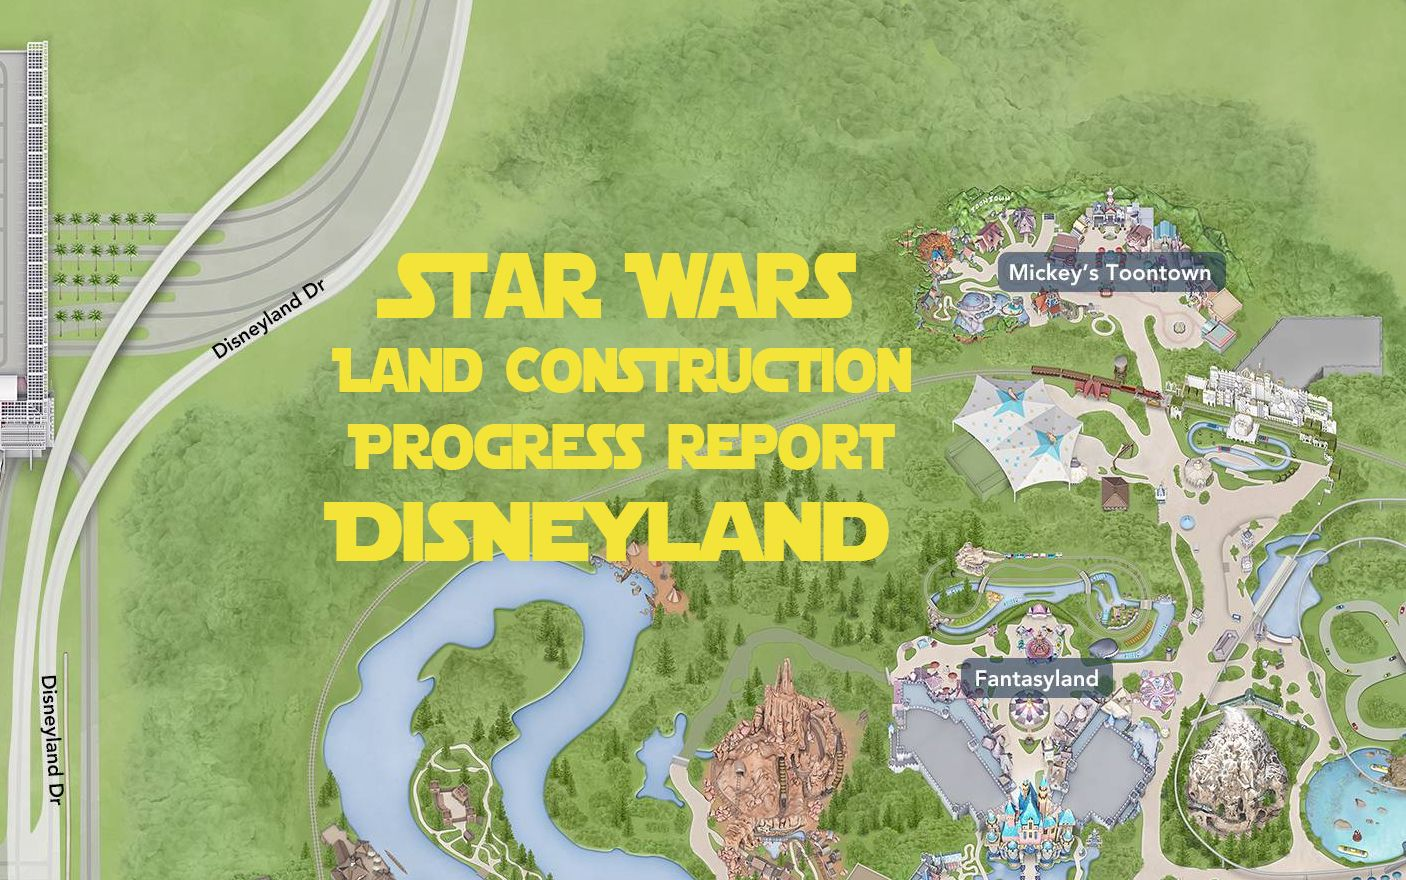 Construction for Star Wars Land is well underway at Disneyland, with the plot now almost totally cleared as of April 2016. We were in the park last Friday